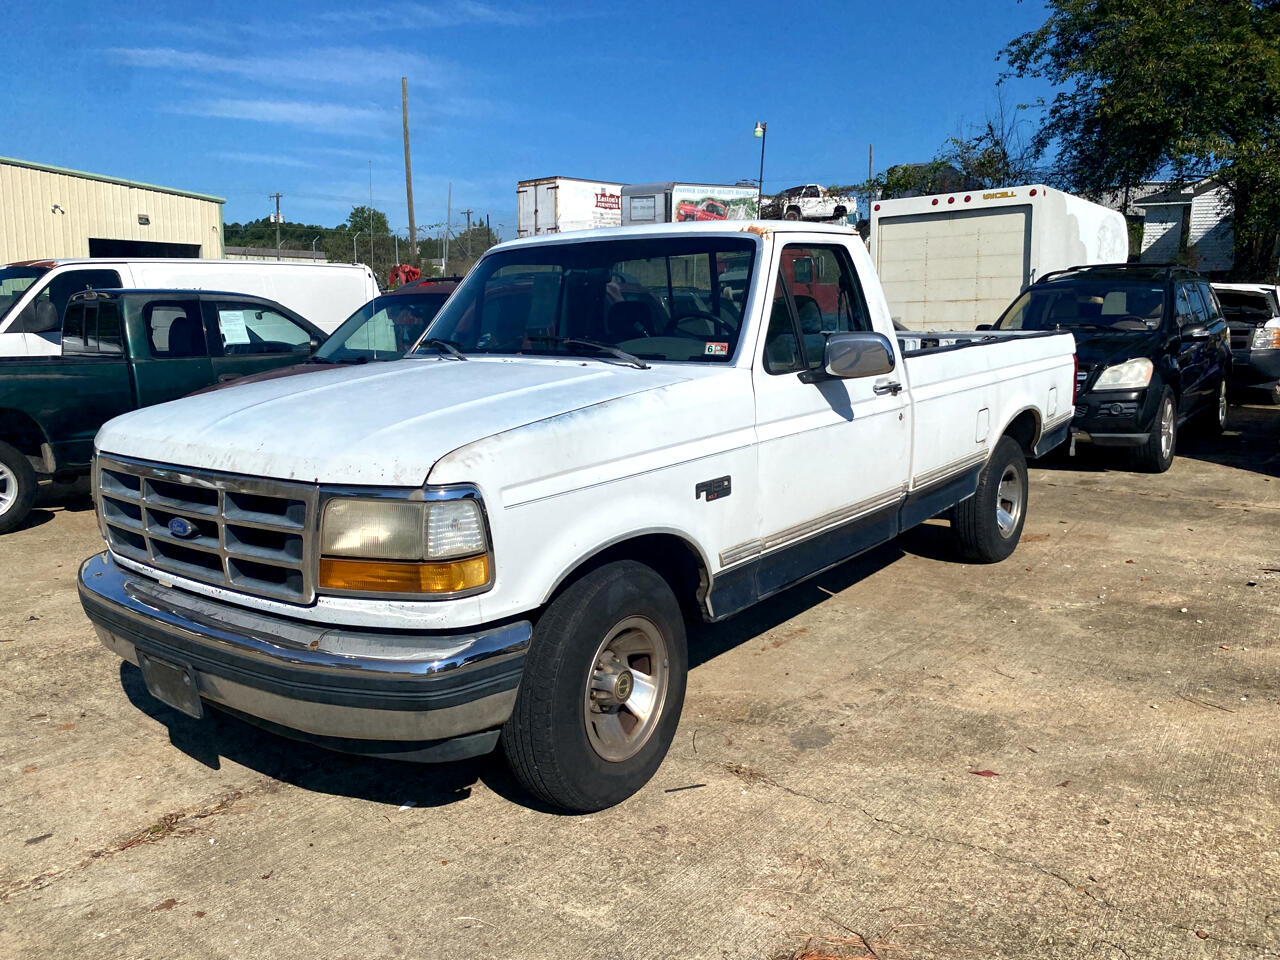 Ford F-150 S Reg. Cab Short Bed 2WD 1992